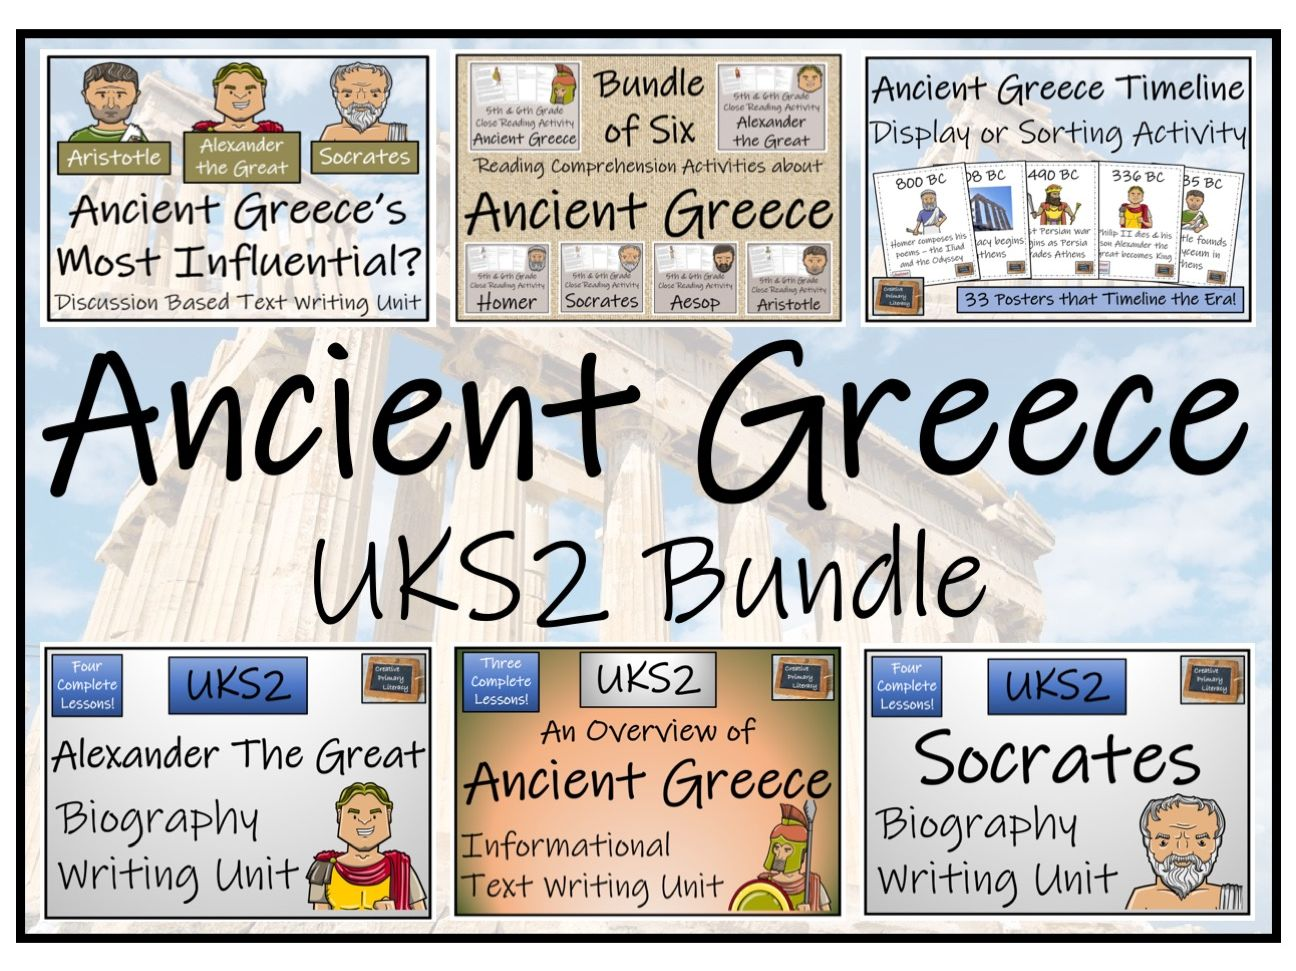 UKS2 History - Ancient Greece Display, Reading Comprehension & Writing Mega Bundle